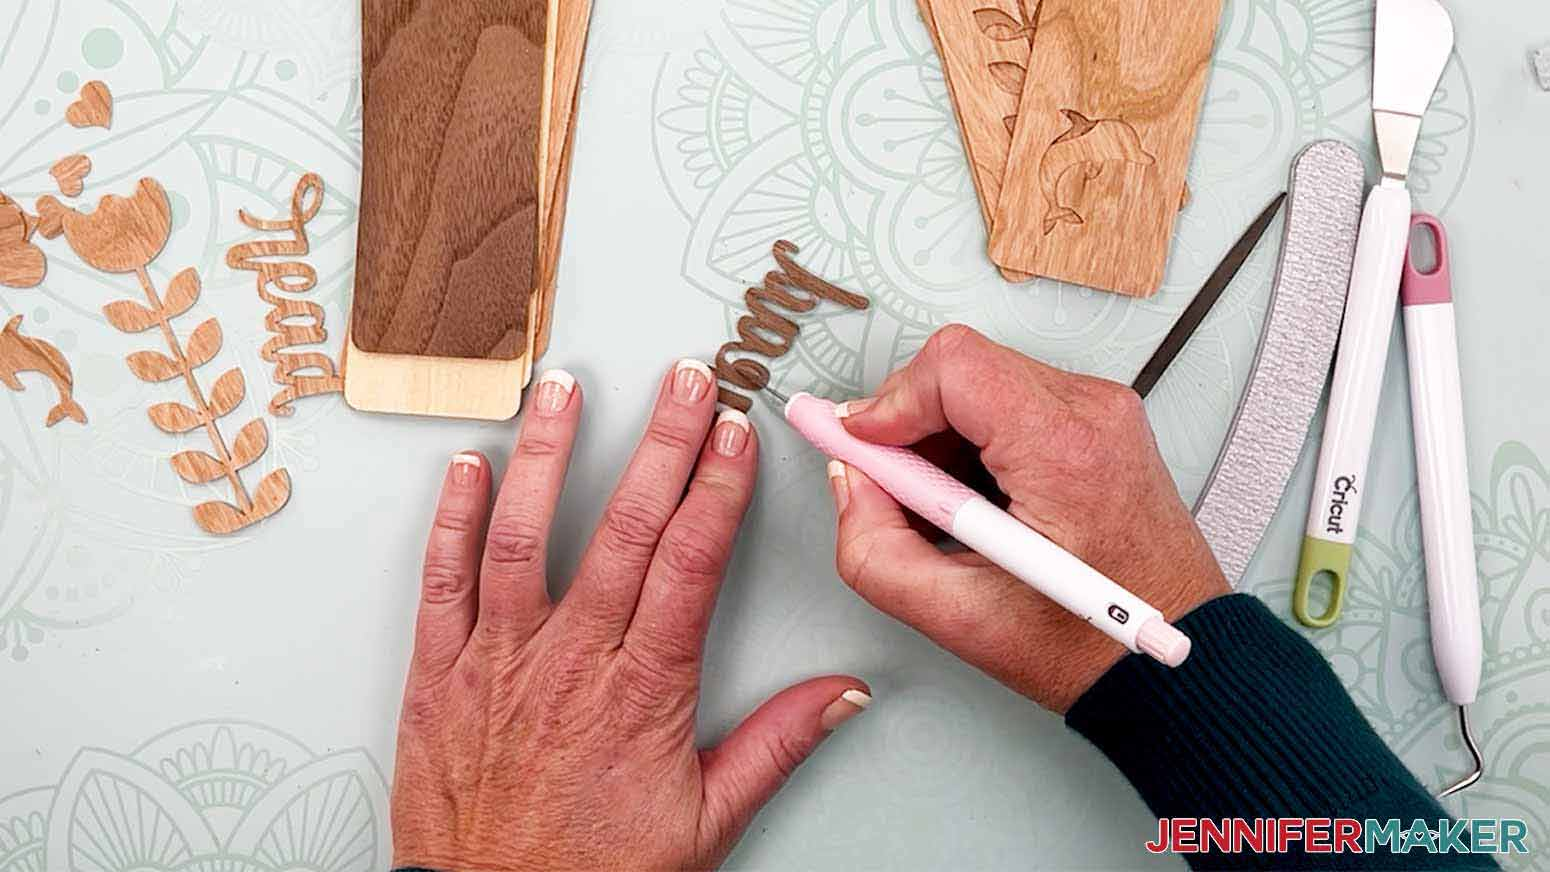 Use a knife blade to remobe stubborn pieces from the veneer for my wooden bookmarks project